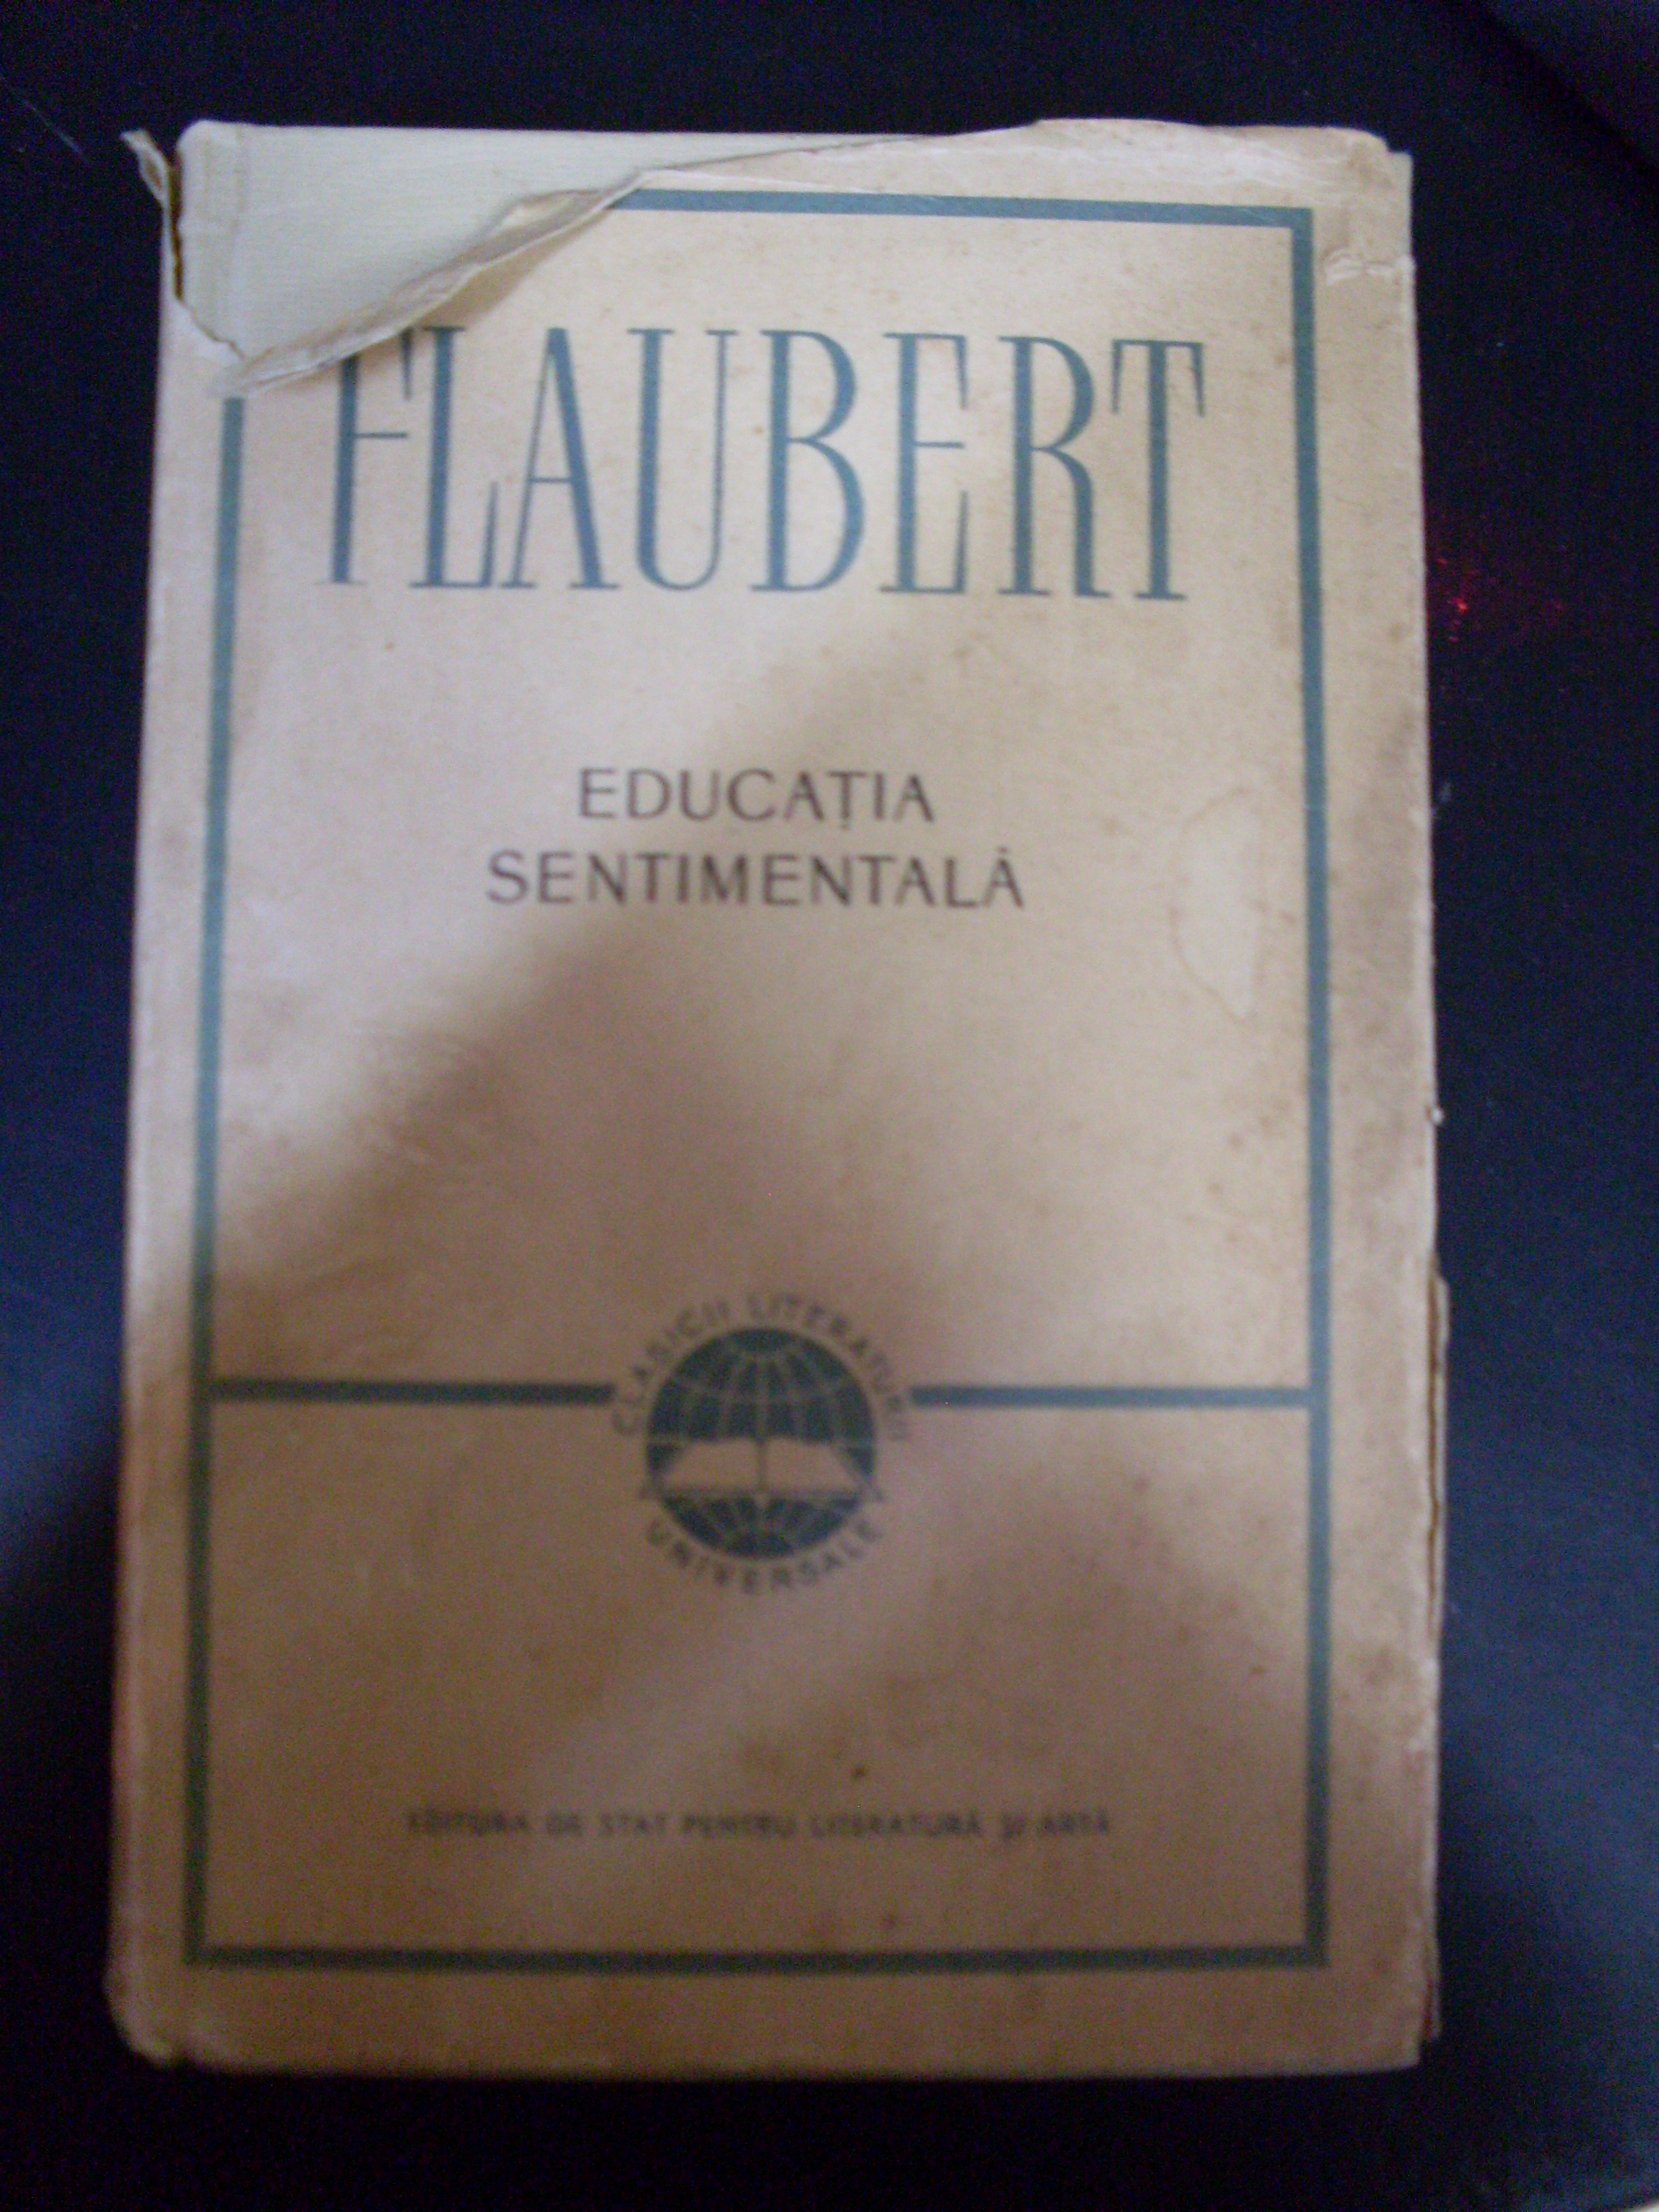 educatia sentimentala                                                                                flaubert